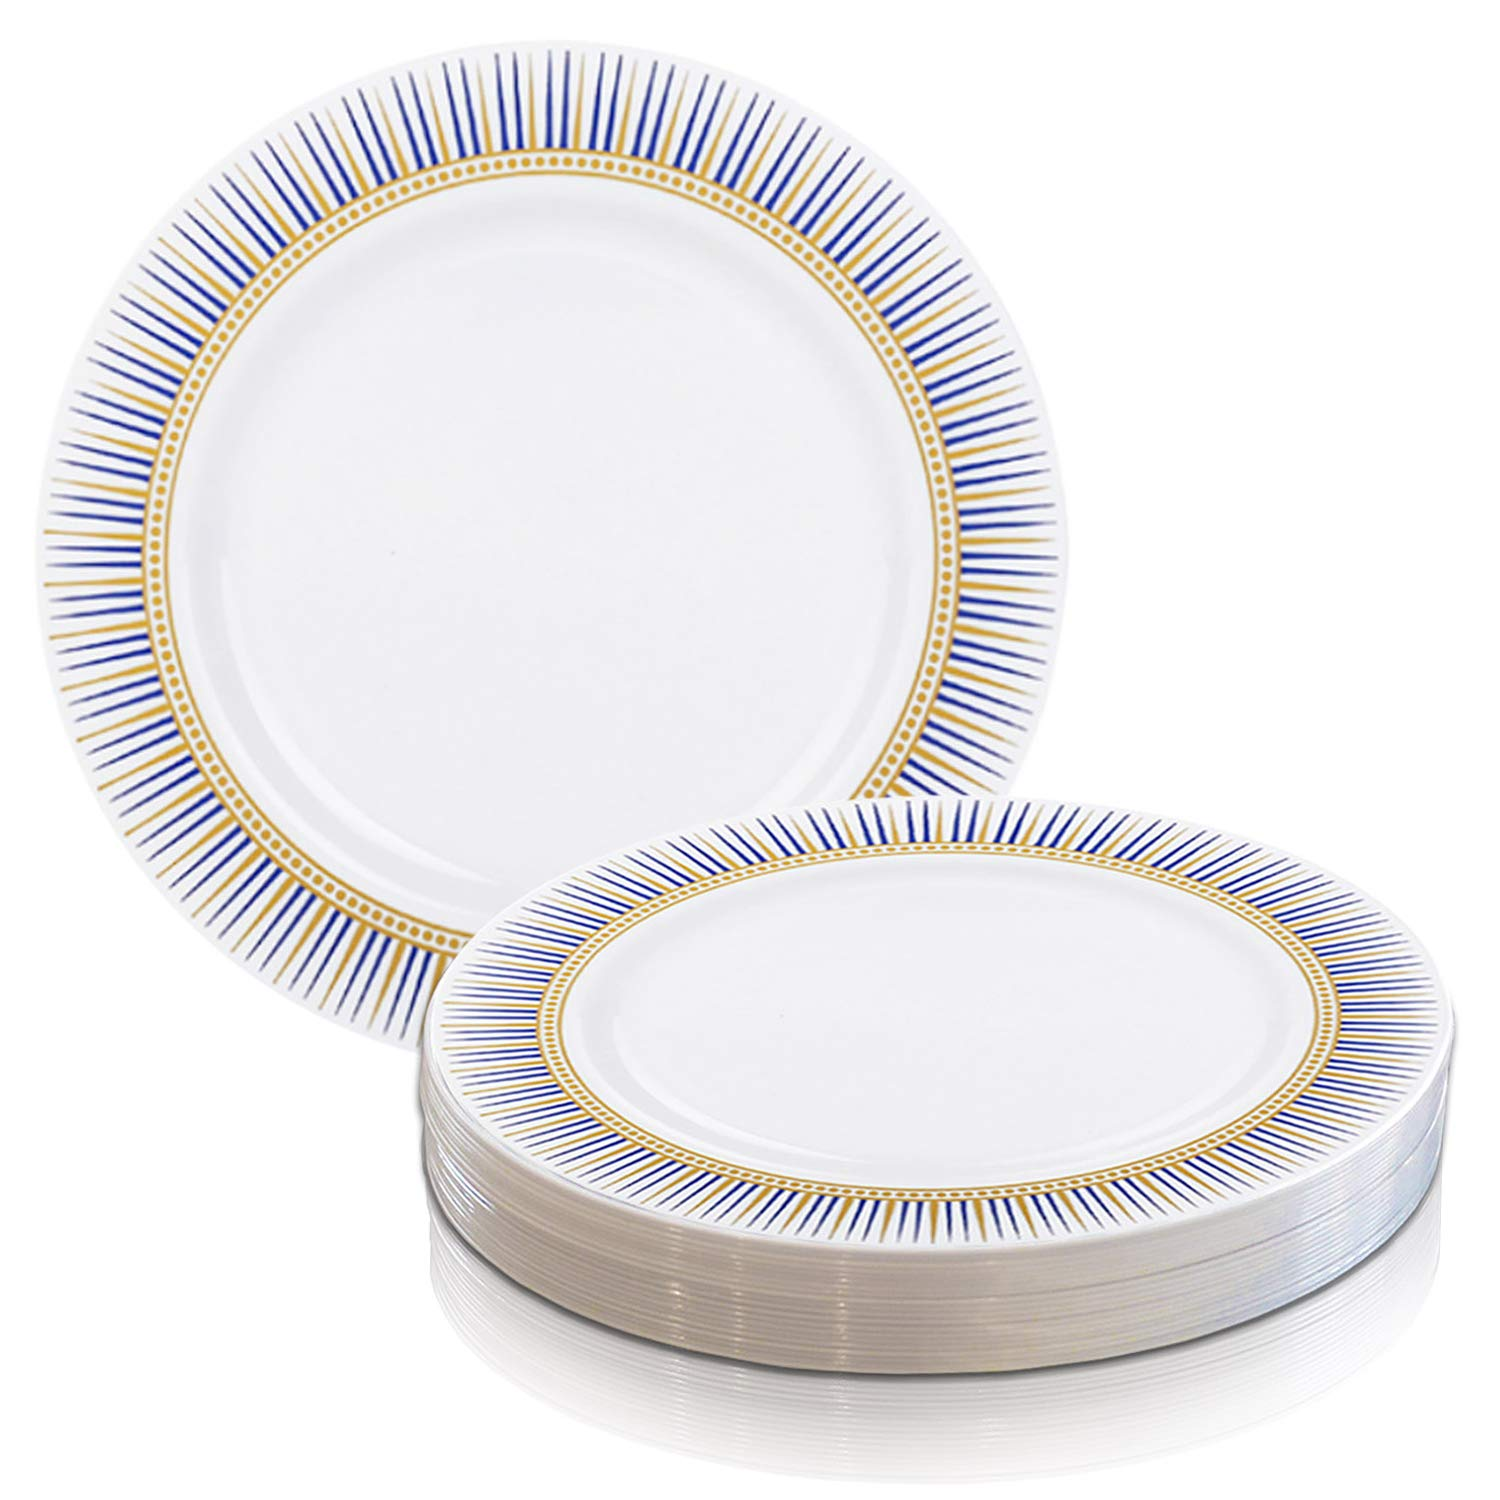 Elegant Disposable Plastic Dinner Plates 120 Pcs - Heavy Duty Round White with Blue & Gold Rim Dinner Plates - Reusable Bulk Party Supplies For Wedding, Easter, Thanksgiving, Birthday & All Occasions